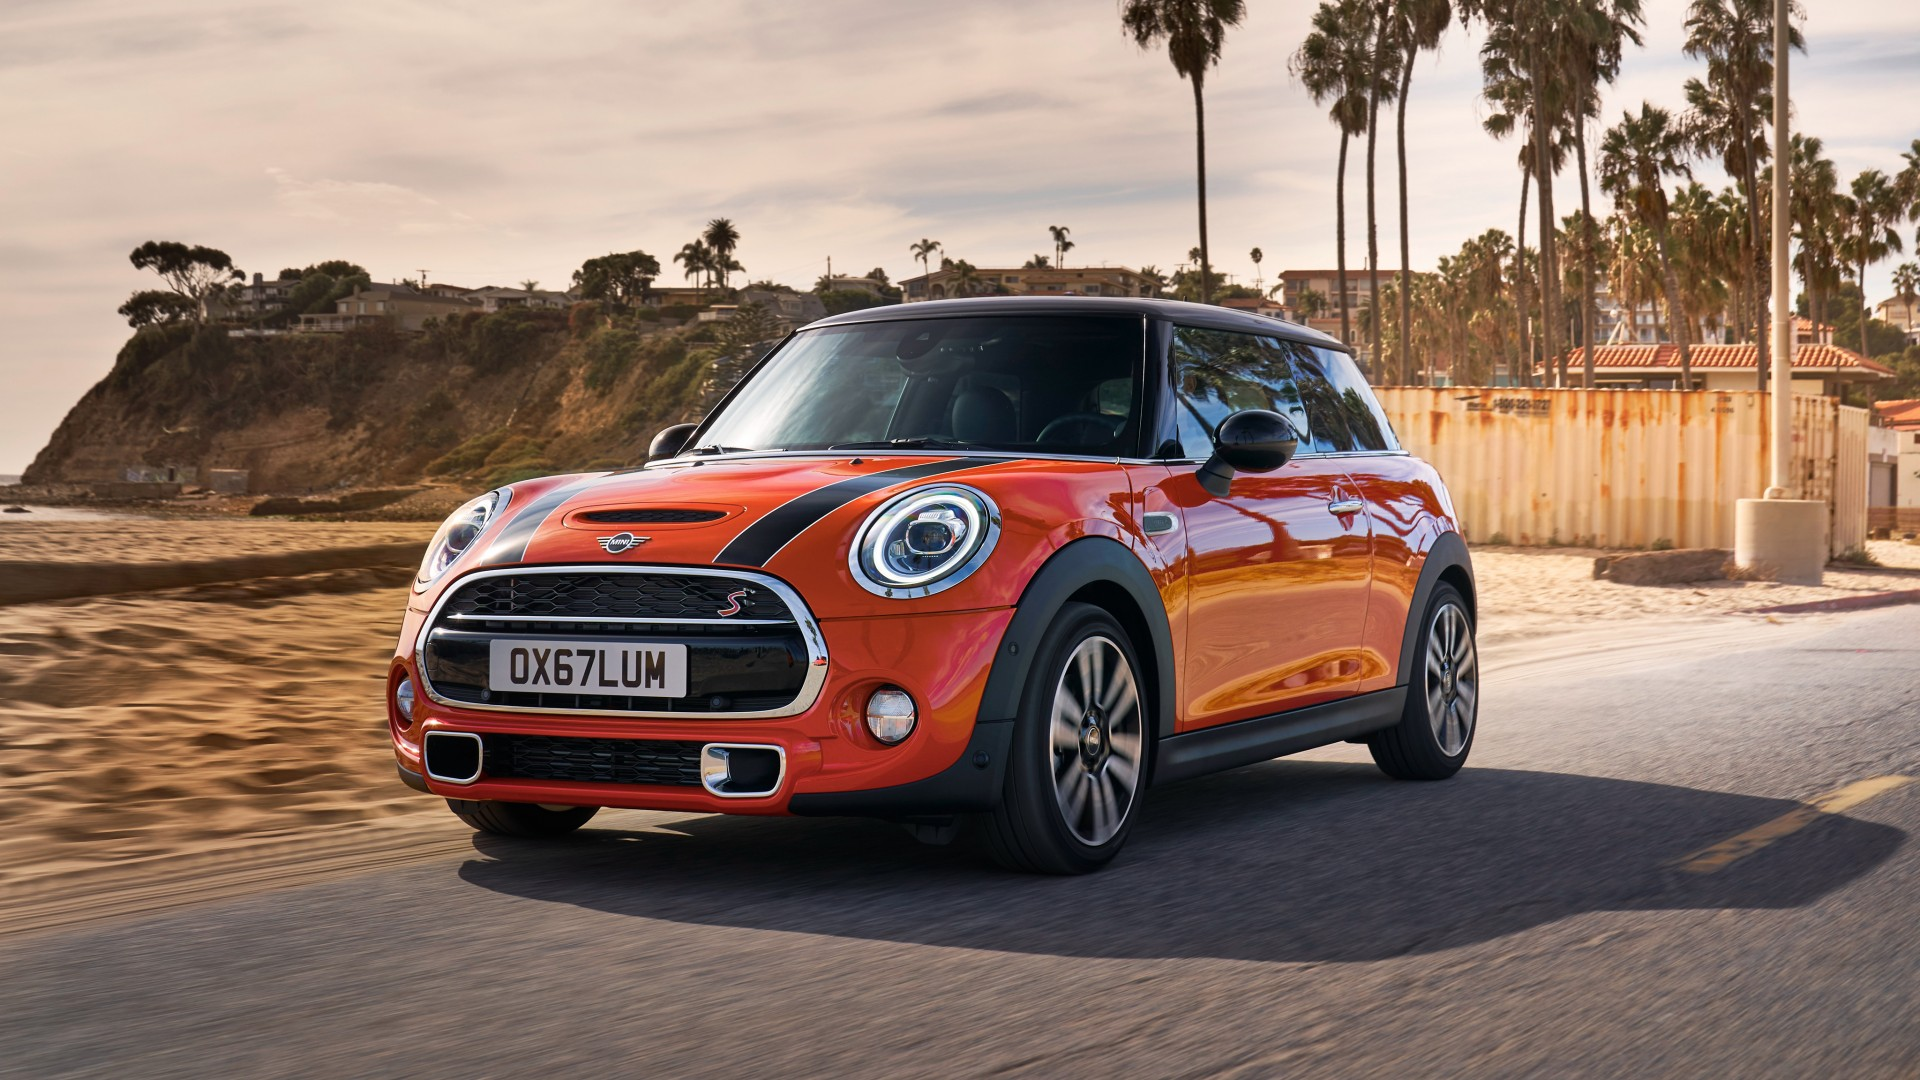 Mini Cooper S 2018 4K Wallpaper | HD Car Wallpapers | ID #9376